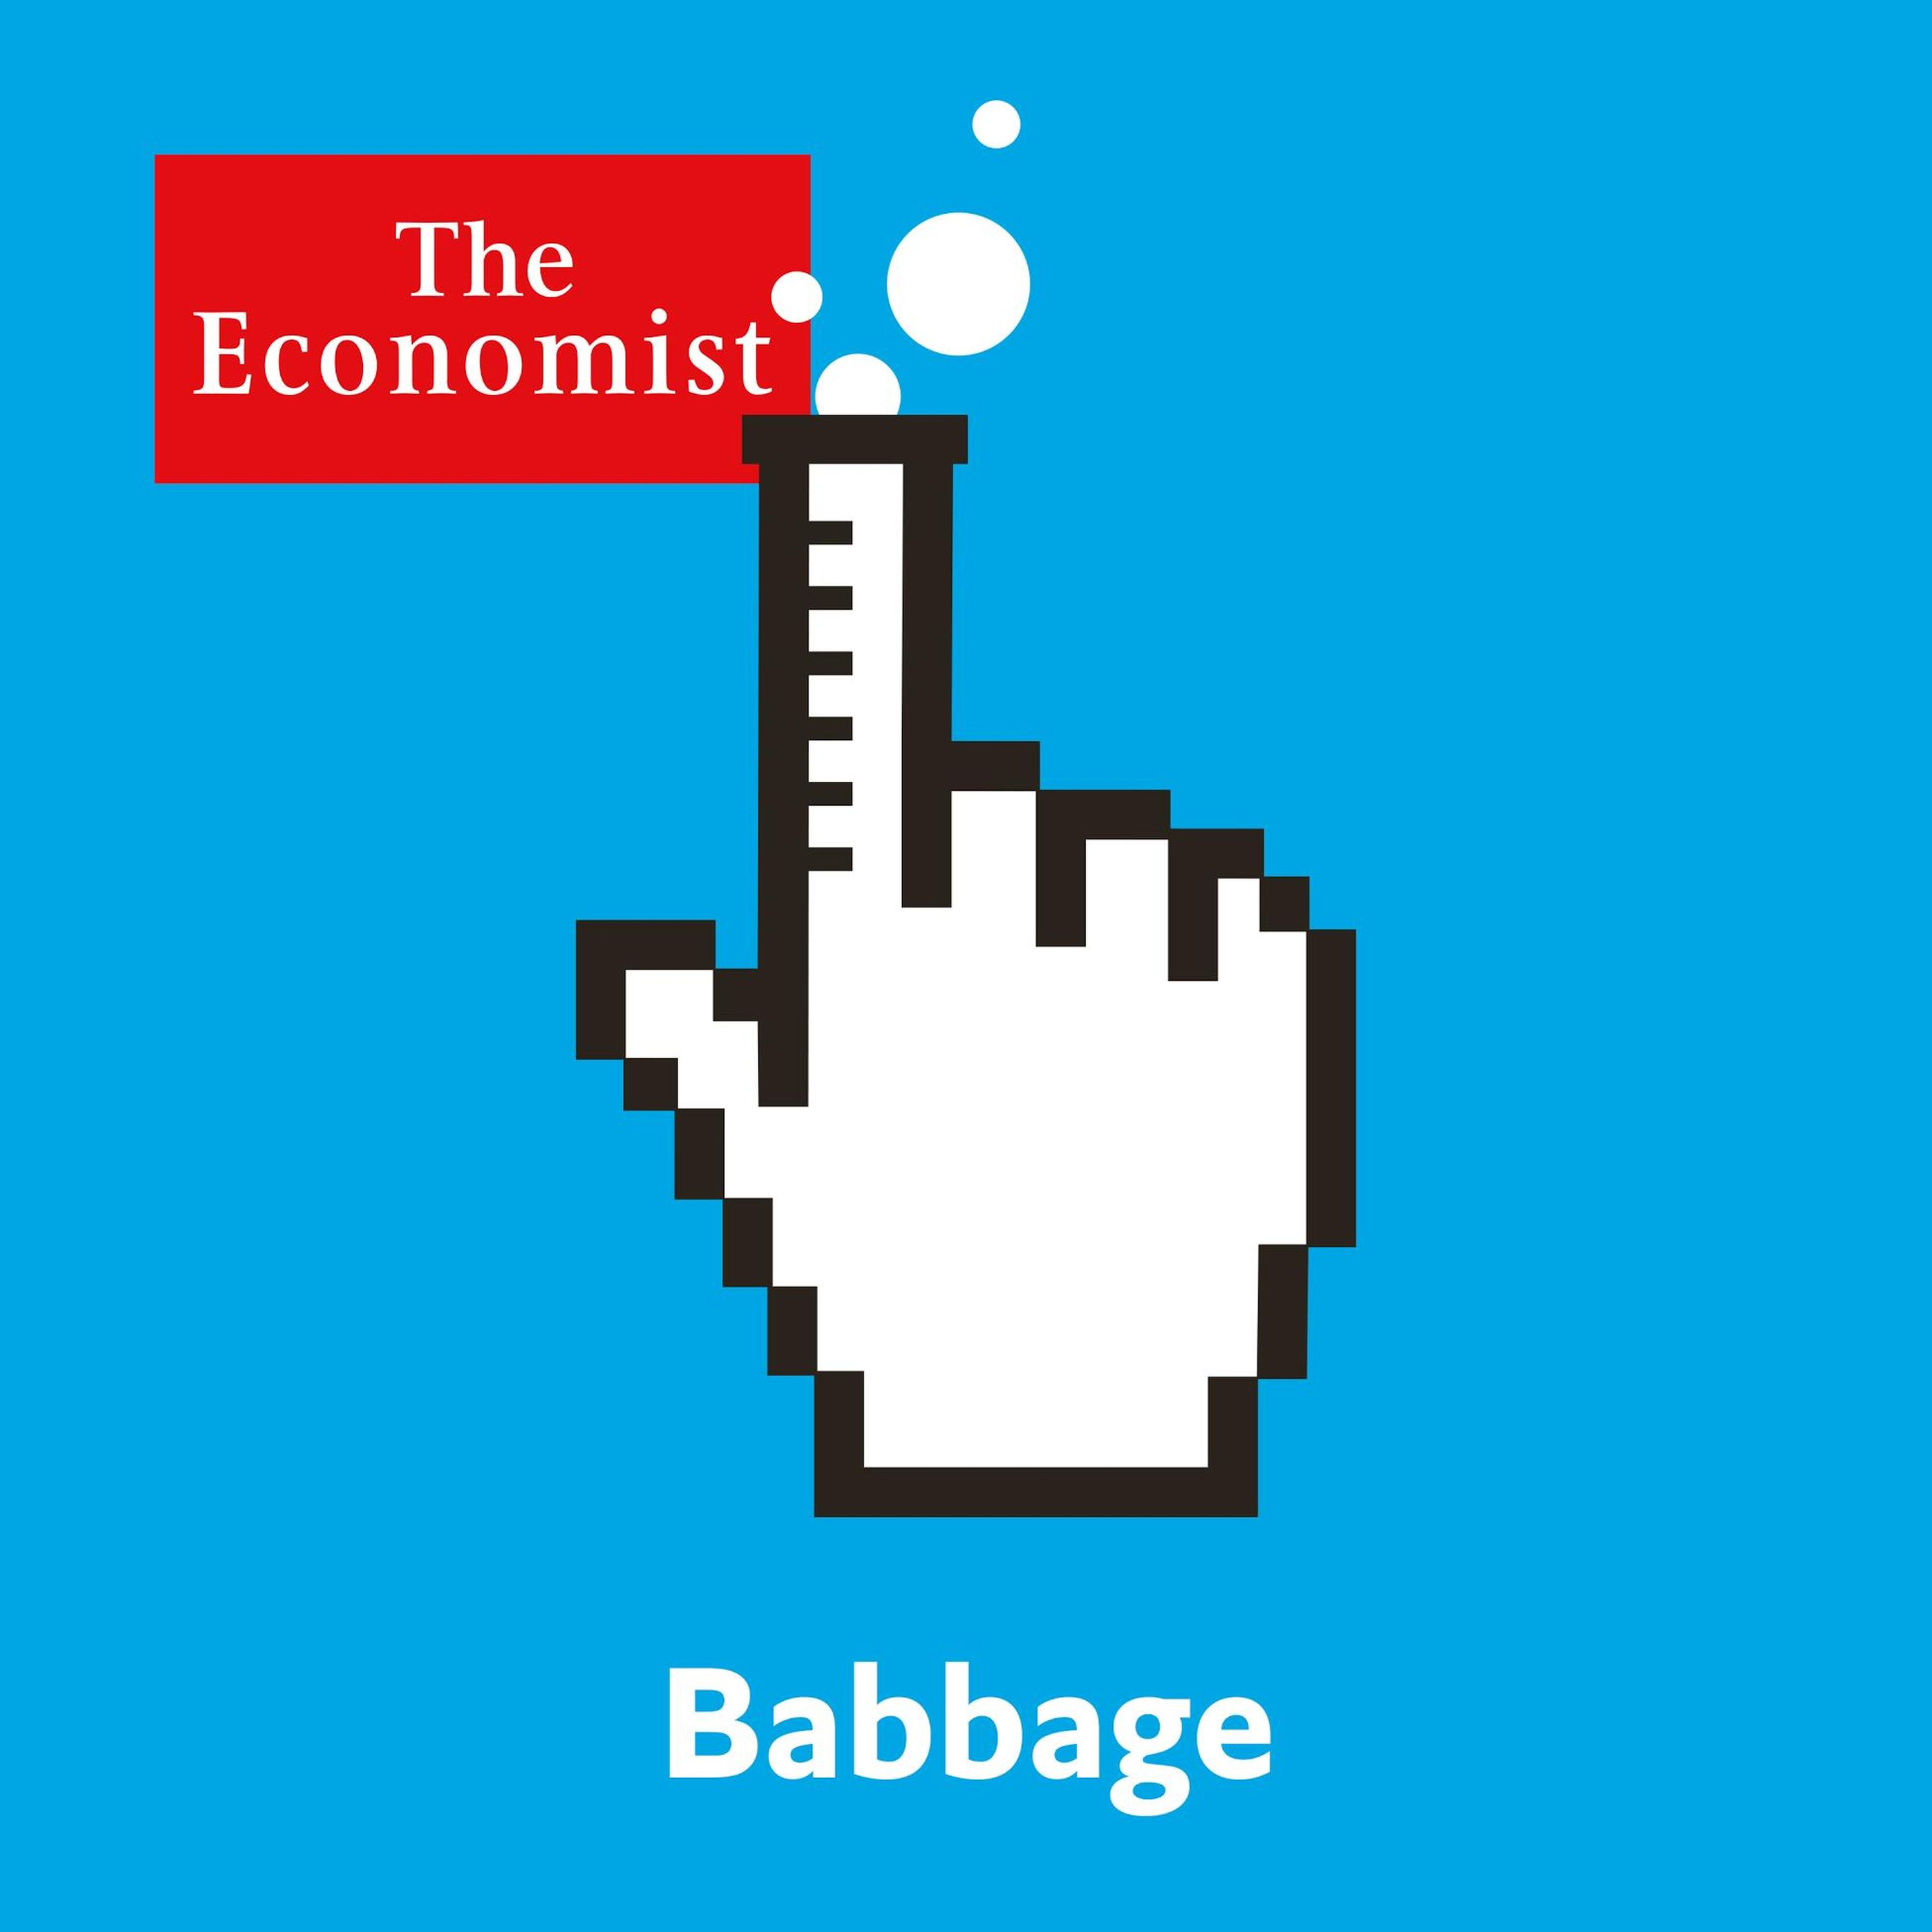 Babbage: Is there anybody out there?